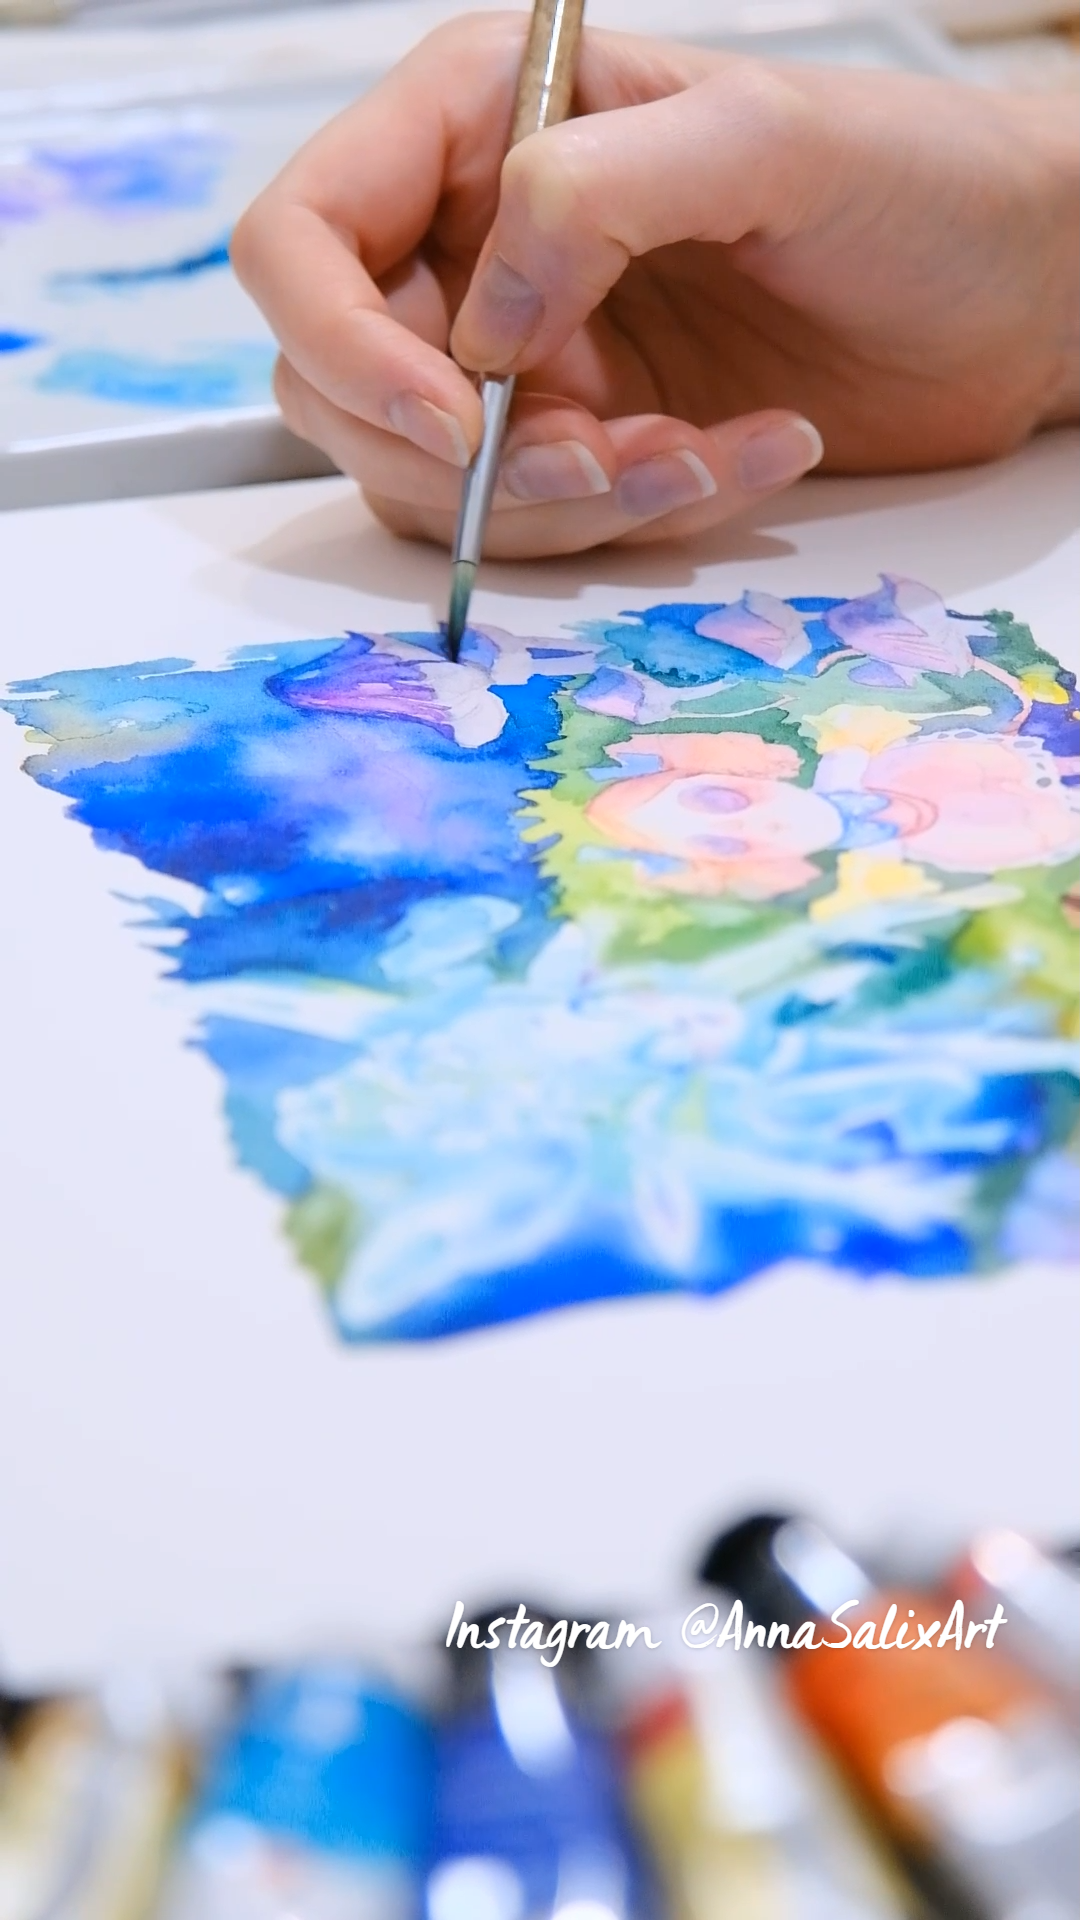 watercolor book illustration painting process